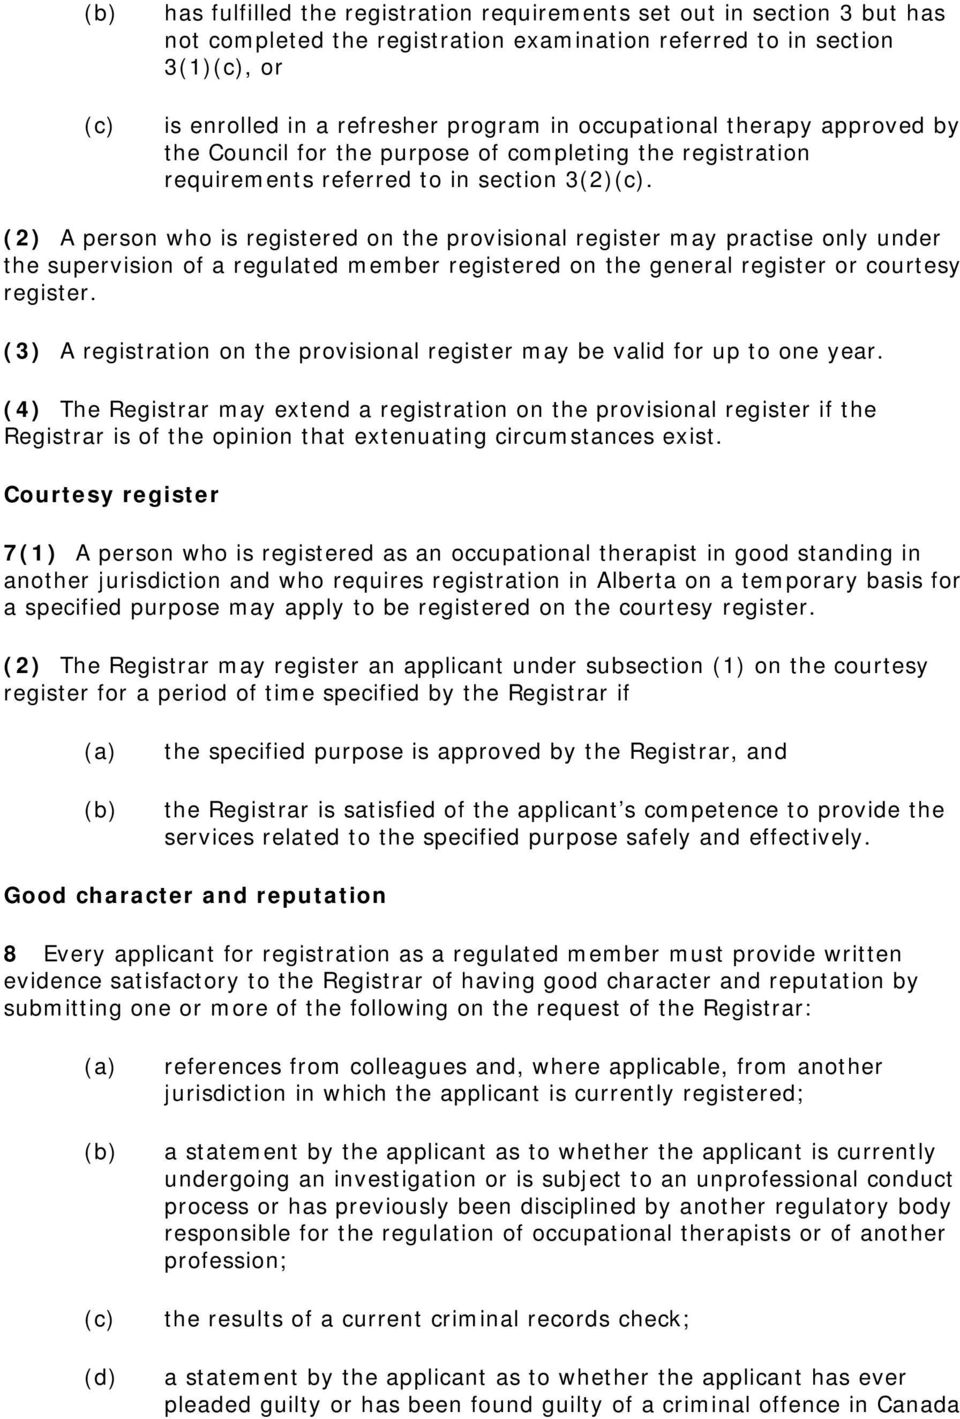 (2) A person who is registered on the provisional register may practise only under the supervision of a regulated member registered on the general register or courtesy register.